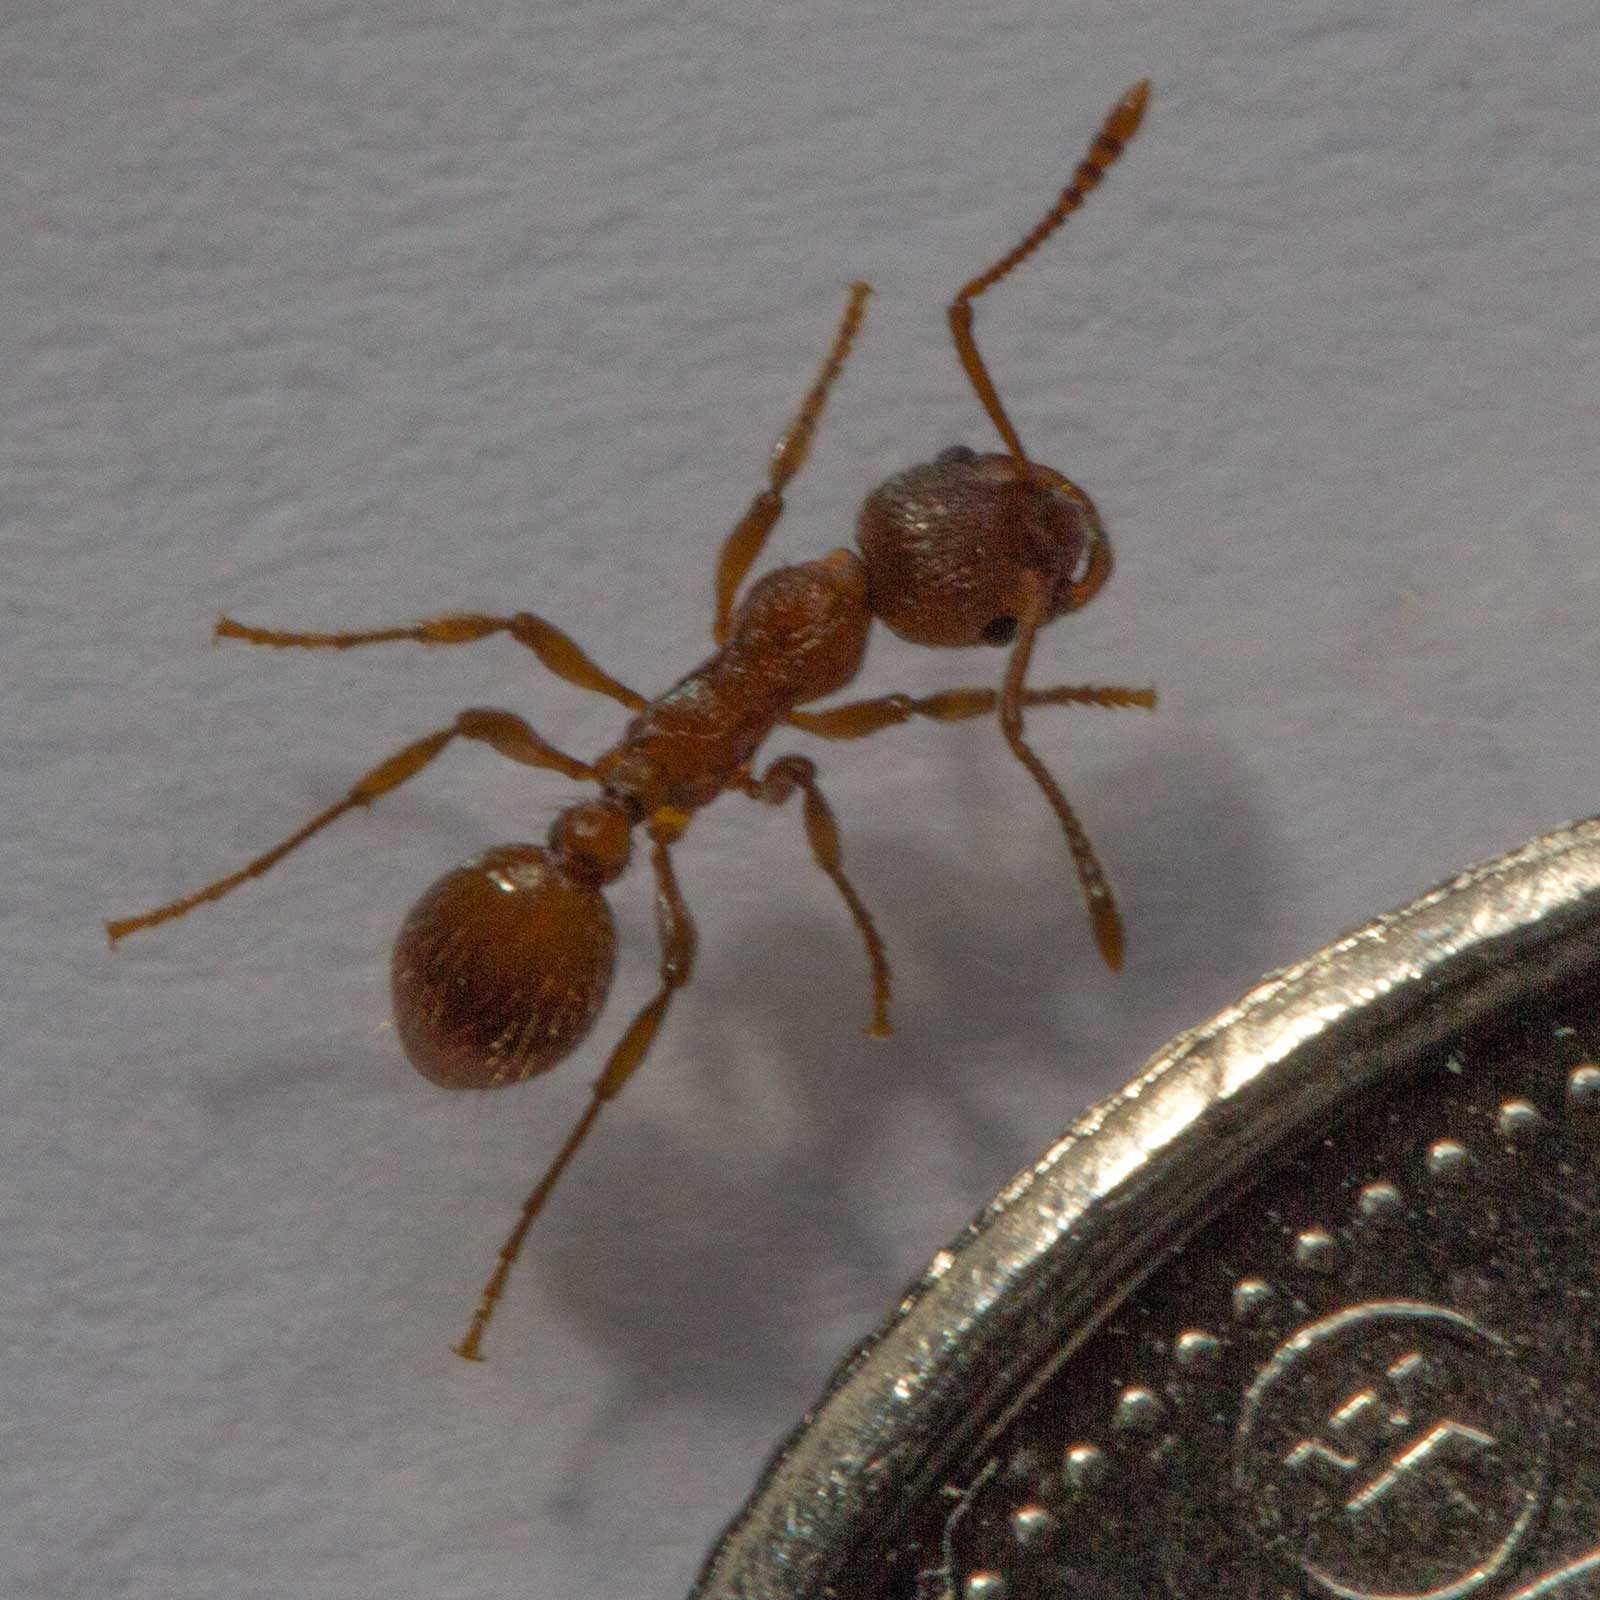 A Fire Ant besides a Coin